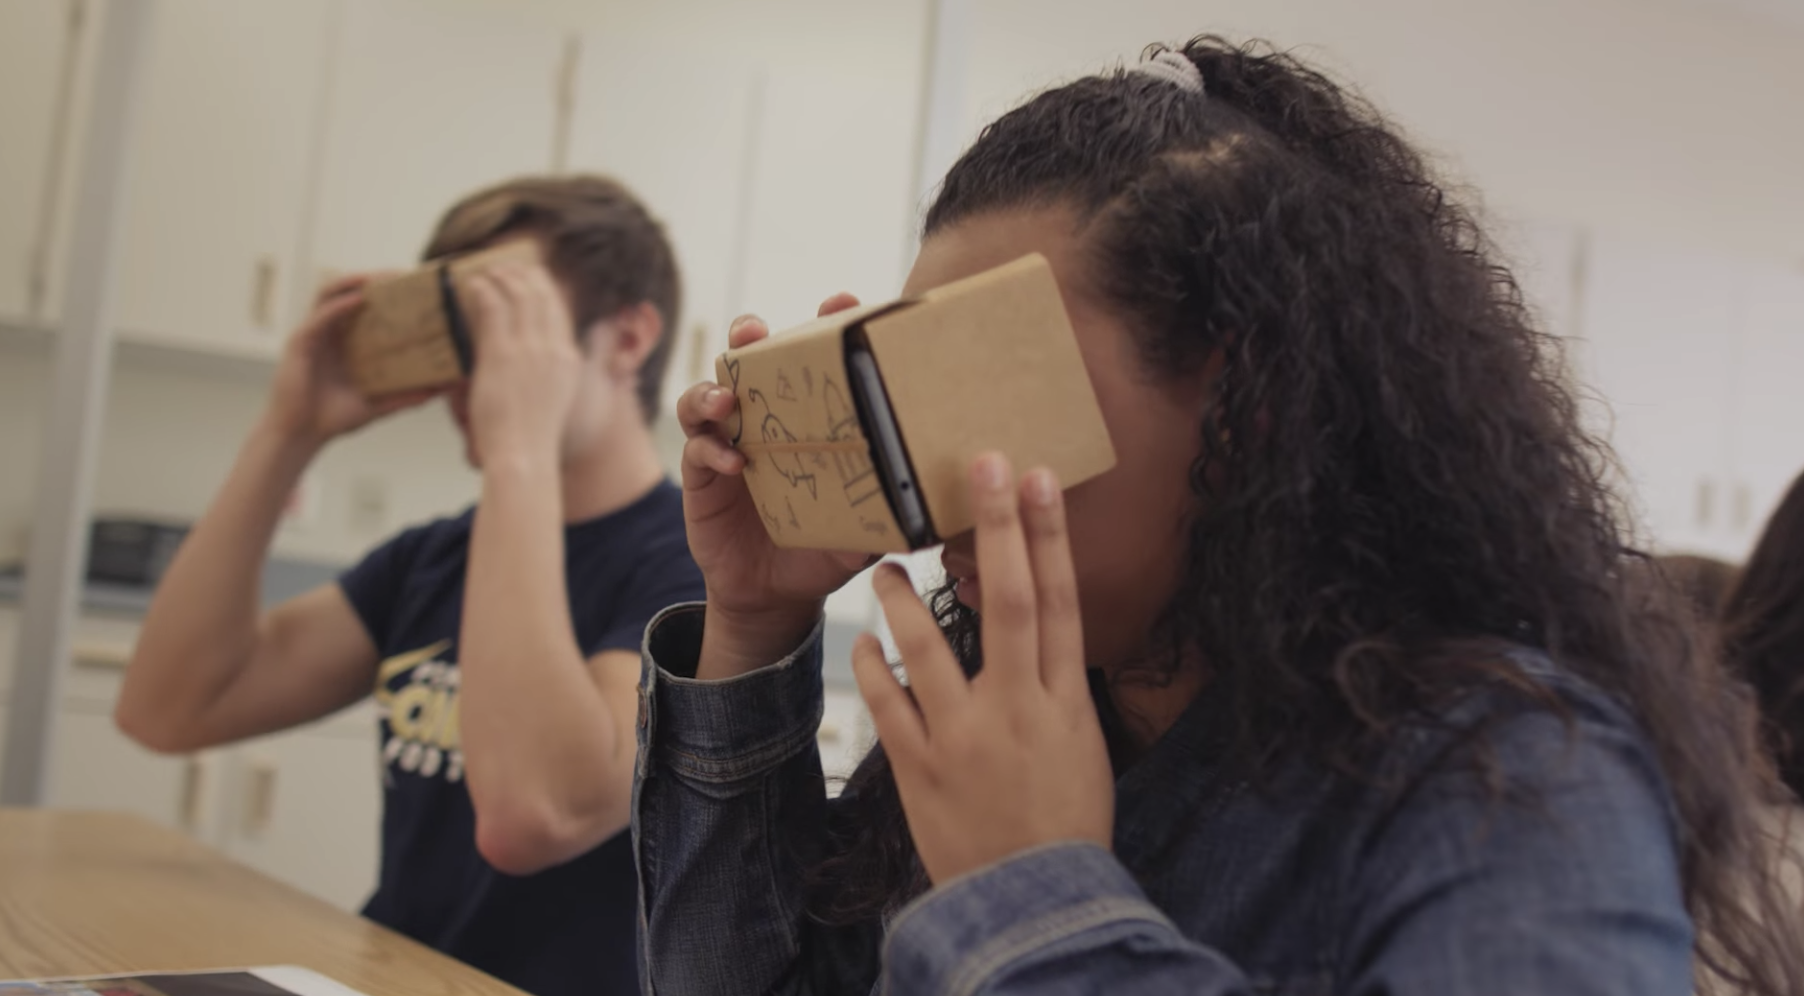 Google Tour Creator brings VR content creation to the masses